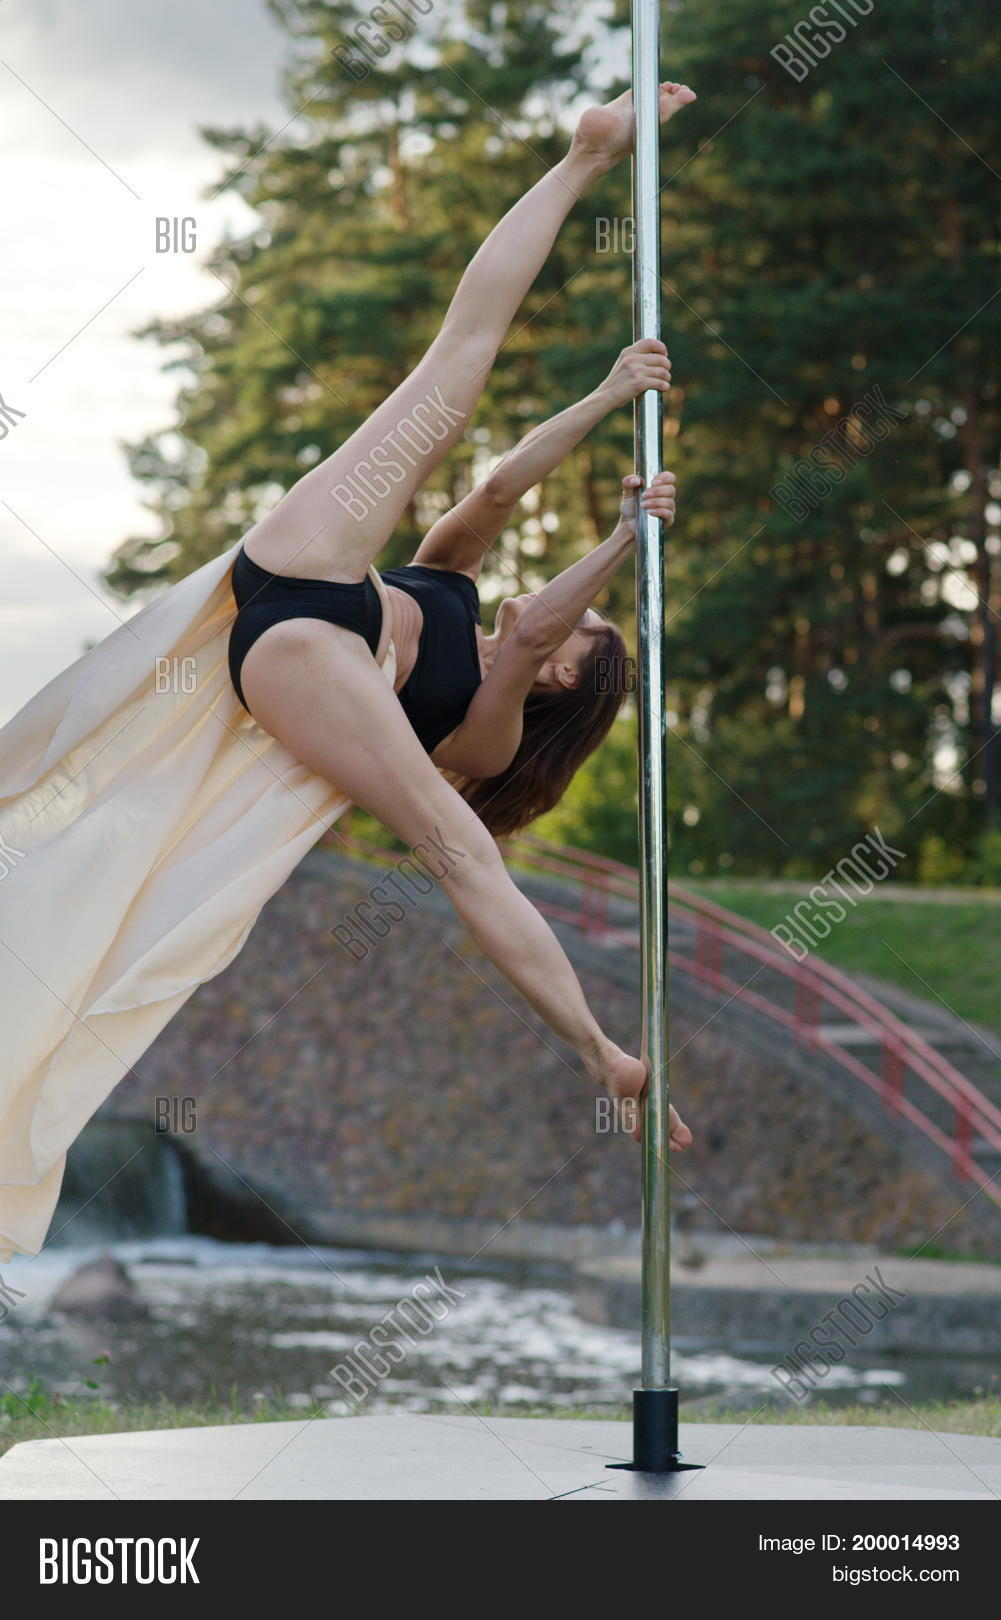 Young Sexy Pole Dance Image Photo Free Trial Bigstock